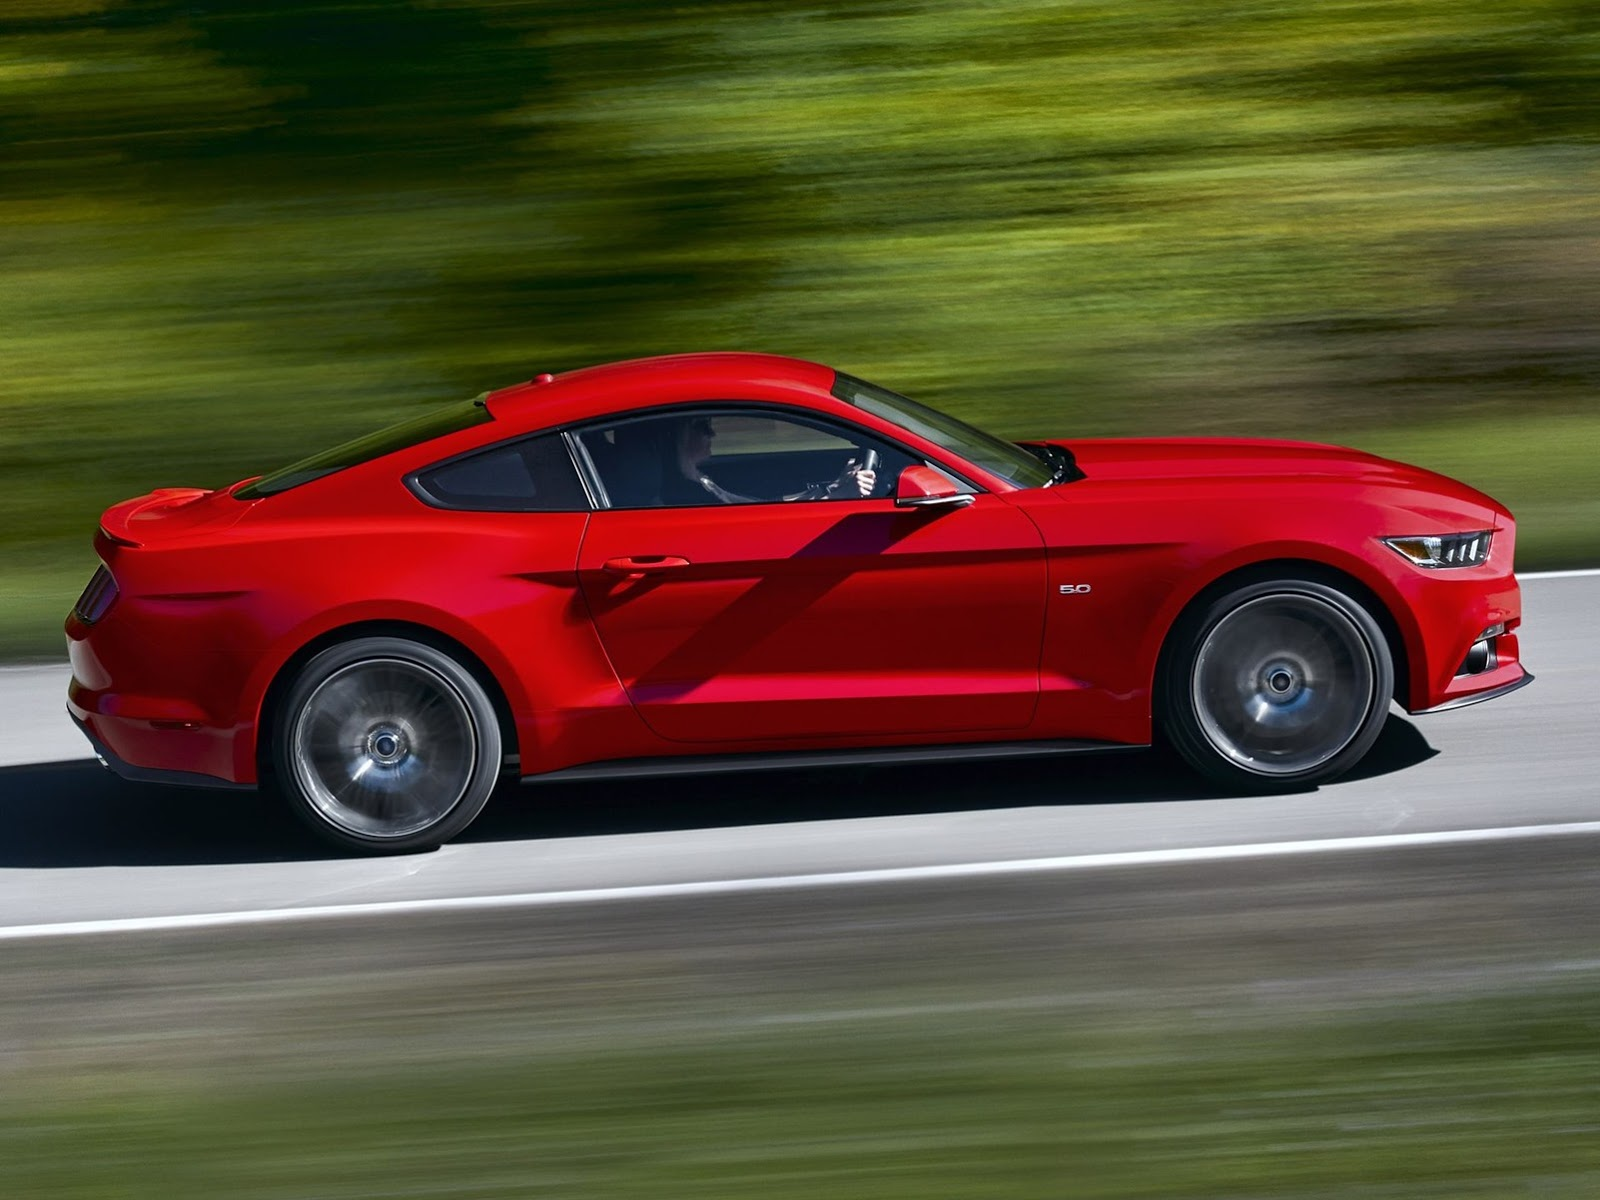 2014 - [Ford] Mustang VII - Page 6 2015-Ford-Mustang-Photos-52%25255B2%25255D